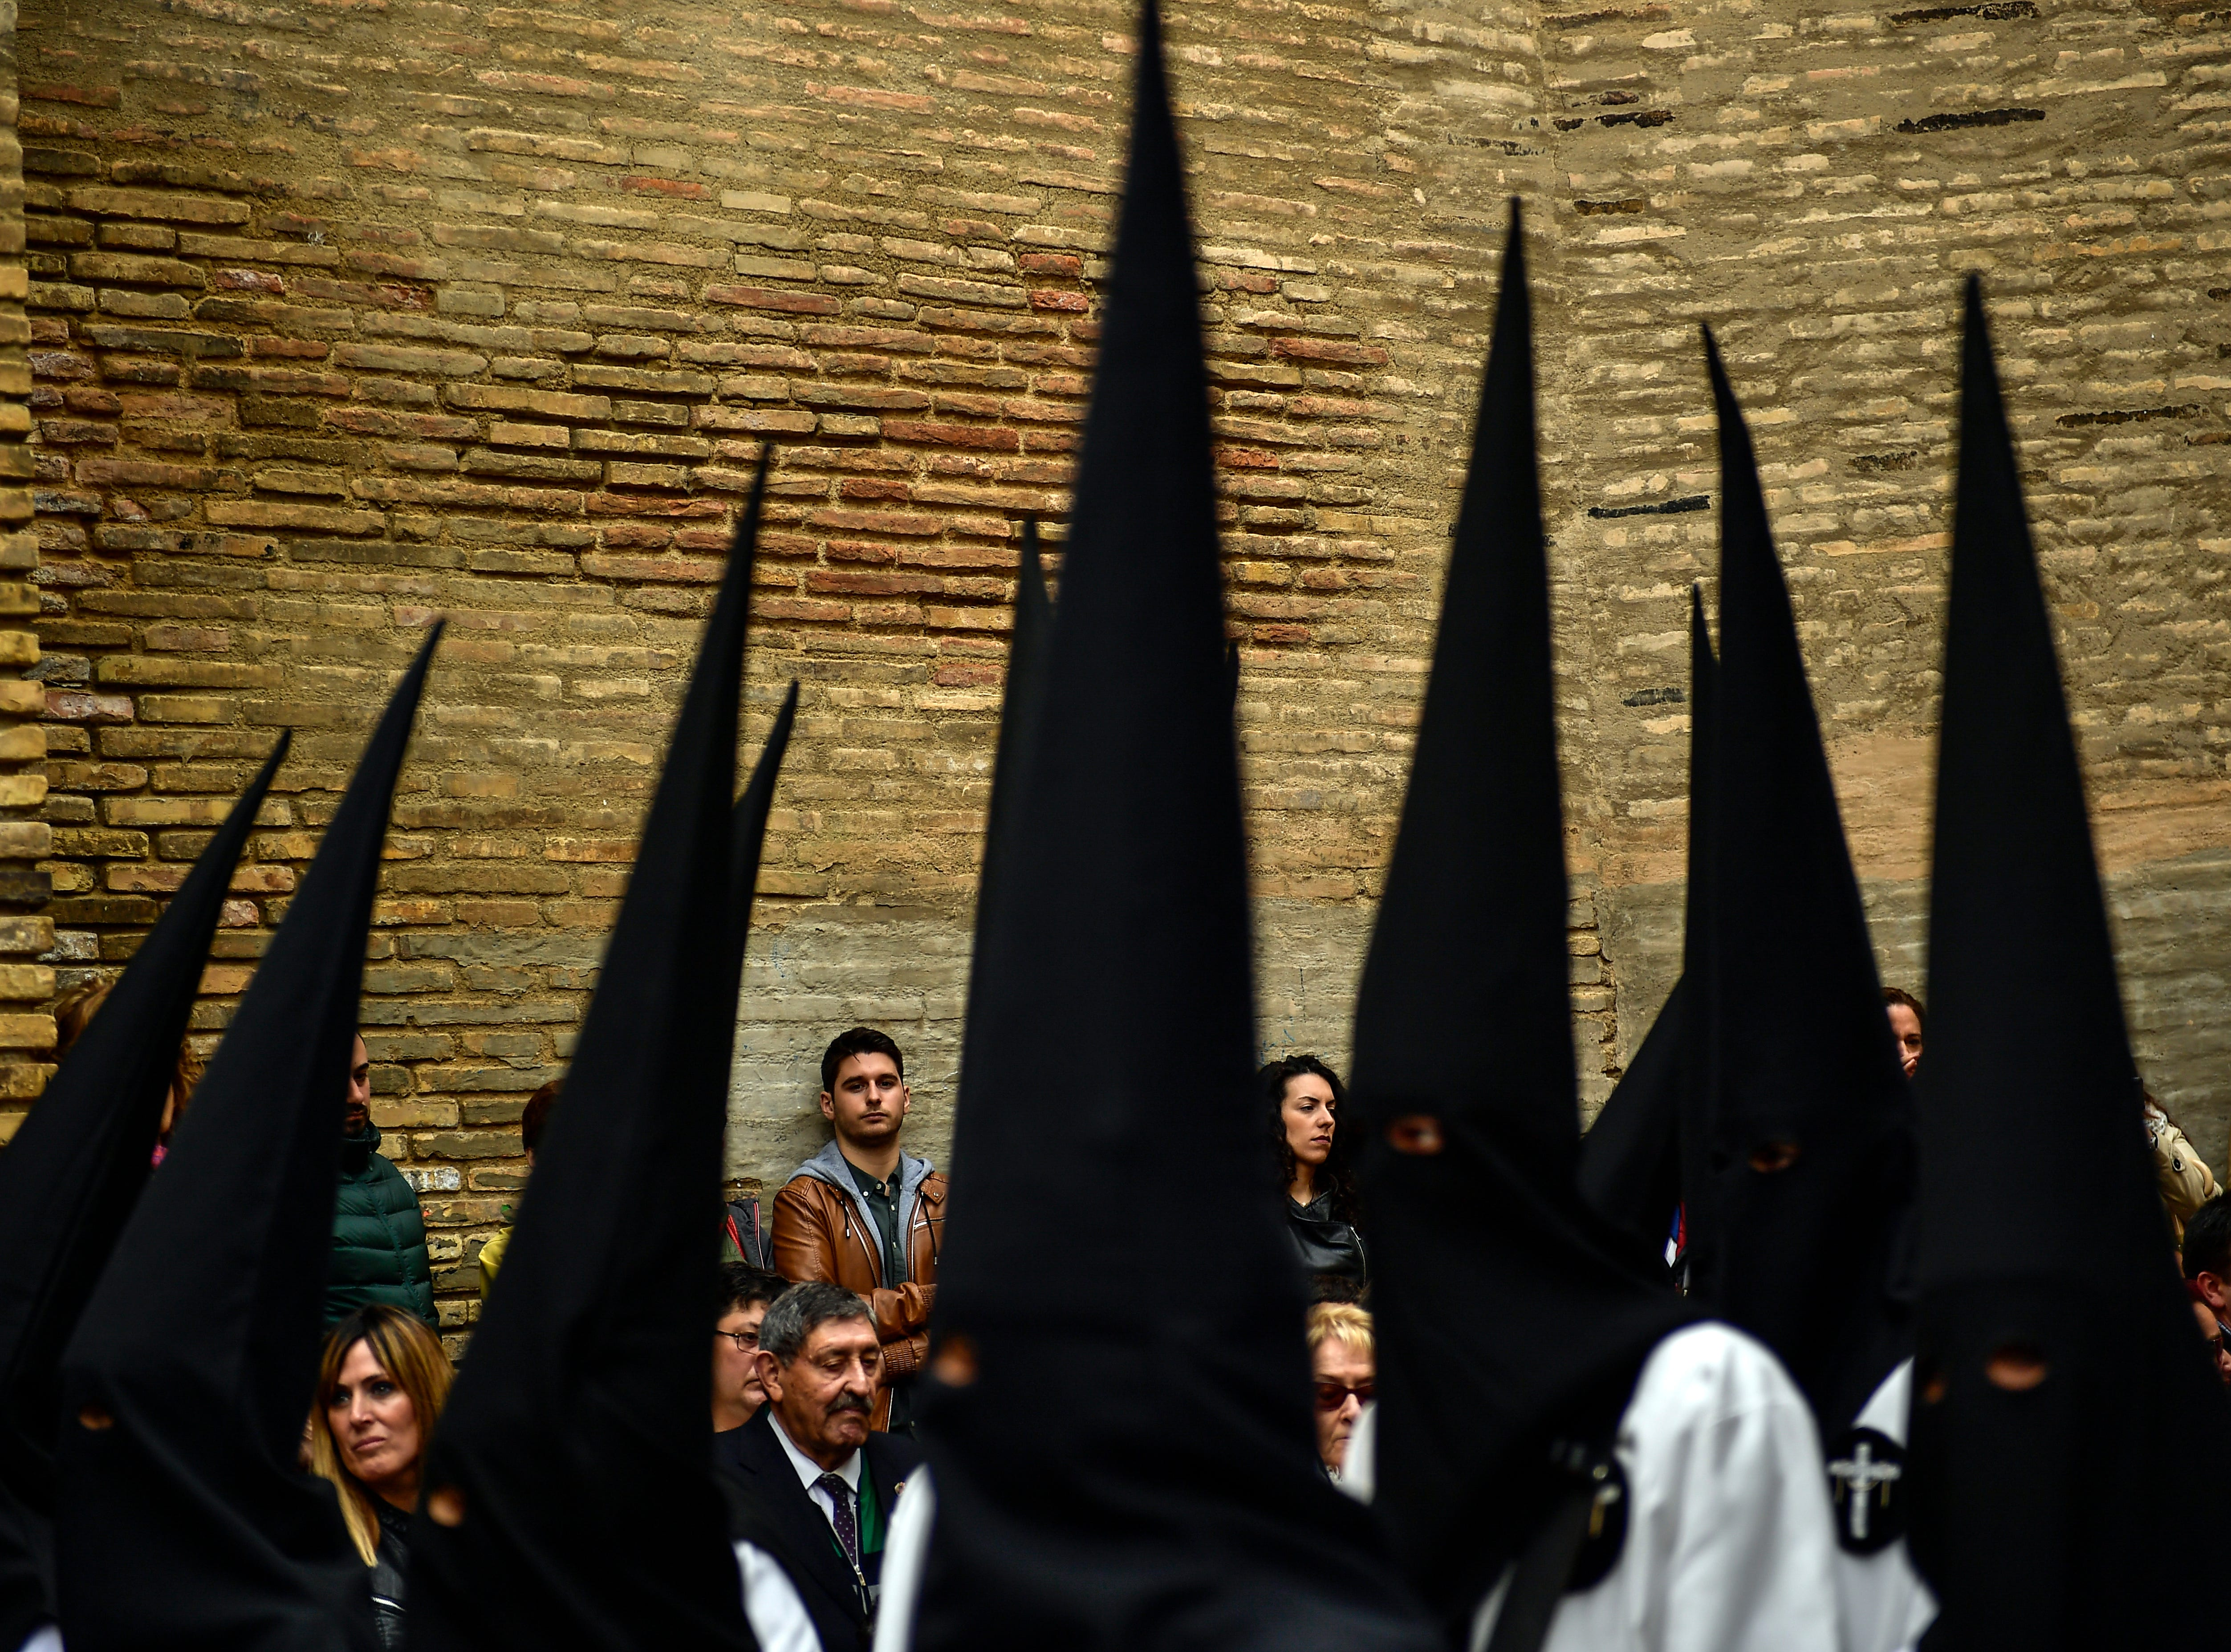 Hooded penitents from the ''Exaltacion de La Santa Cruz'' brotherhood take part in a Holy Week procession in Zaragoza, northern Spain, Thursday, April 18, 2019.